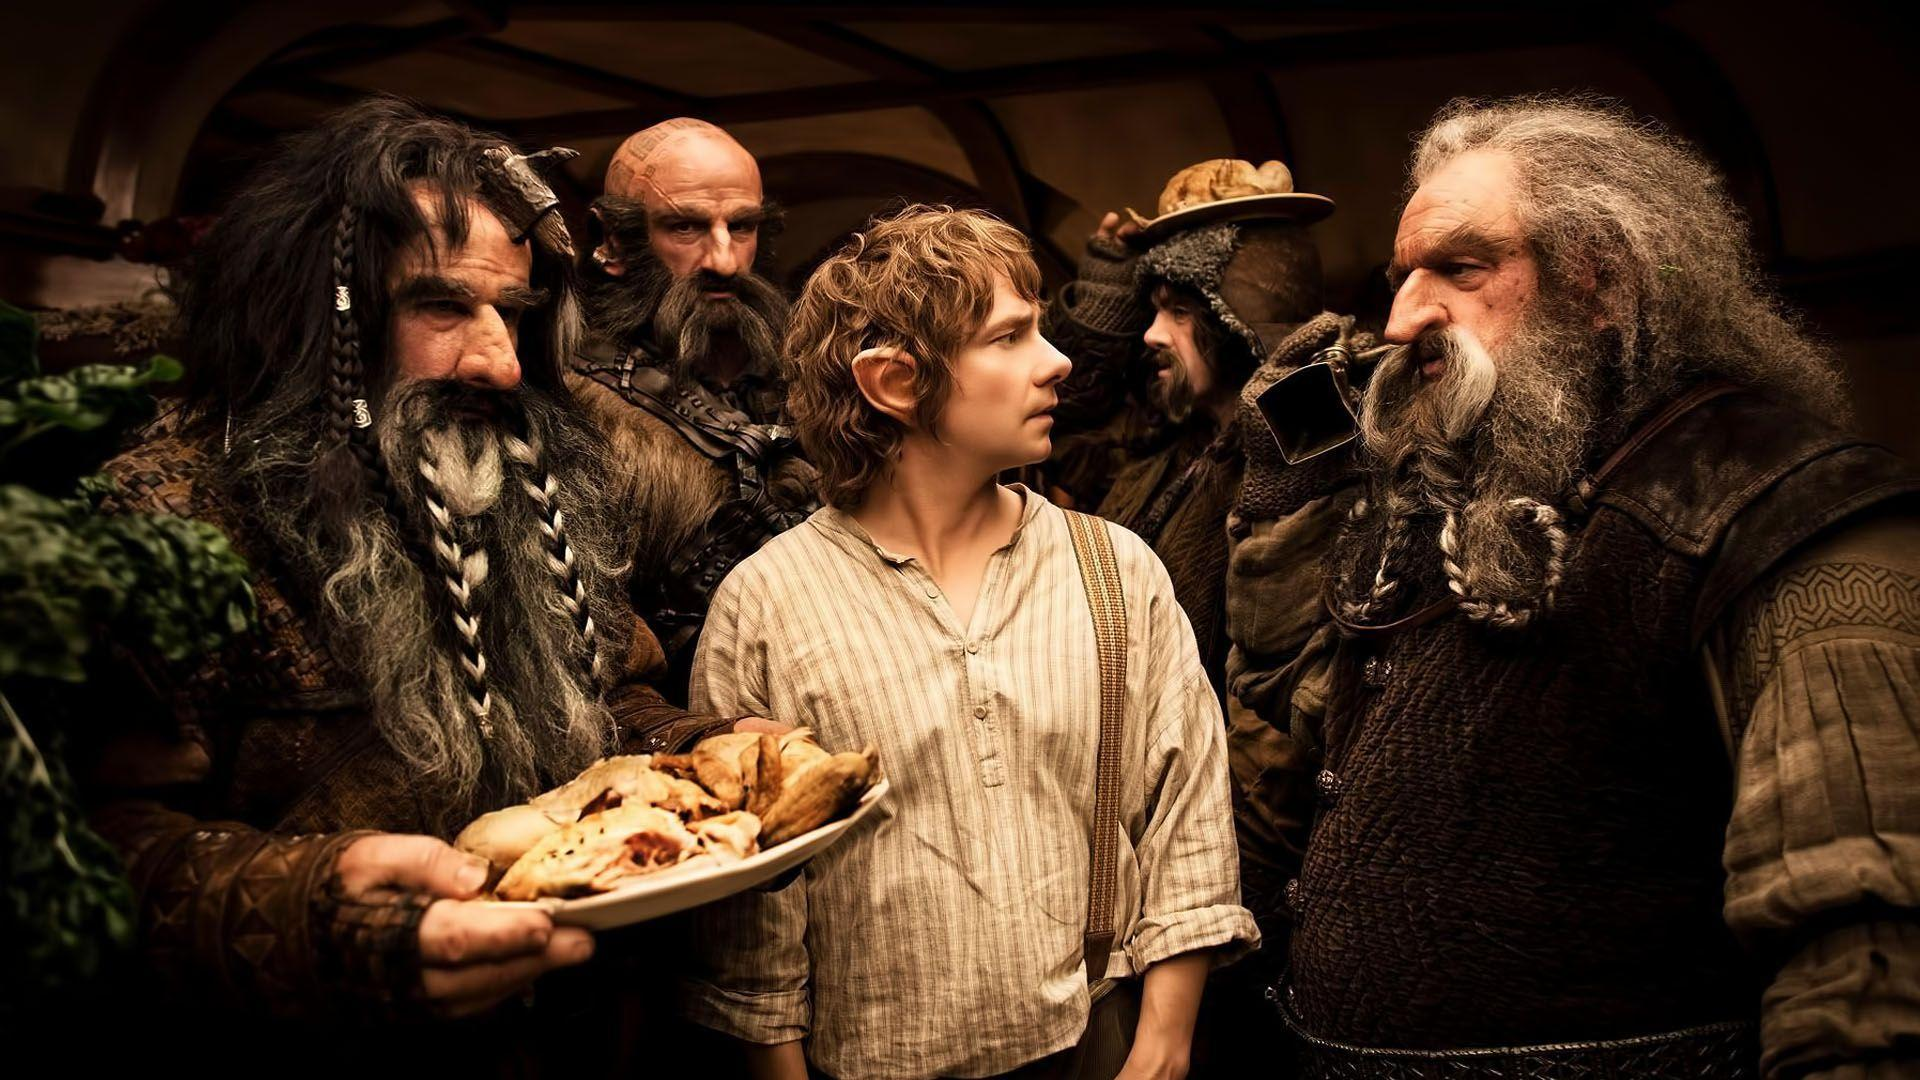 The Hobbit Wallpaper 28 The Hobbit Wallpaper 28 - HD Wallpaper ...